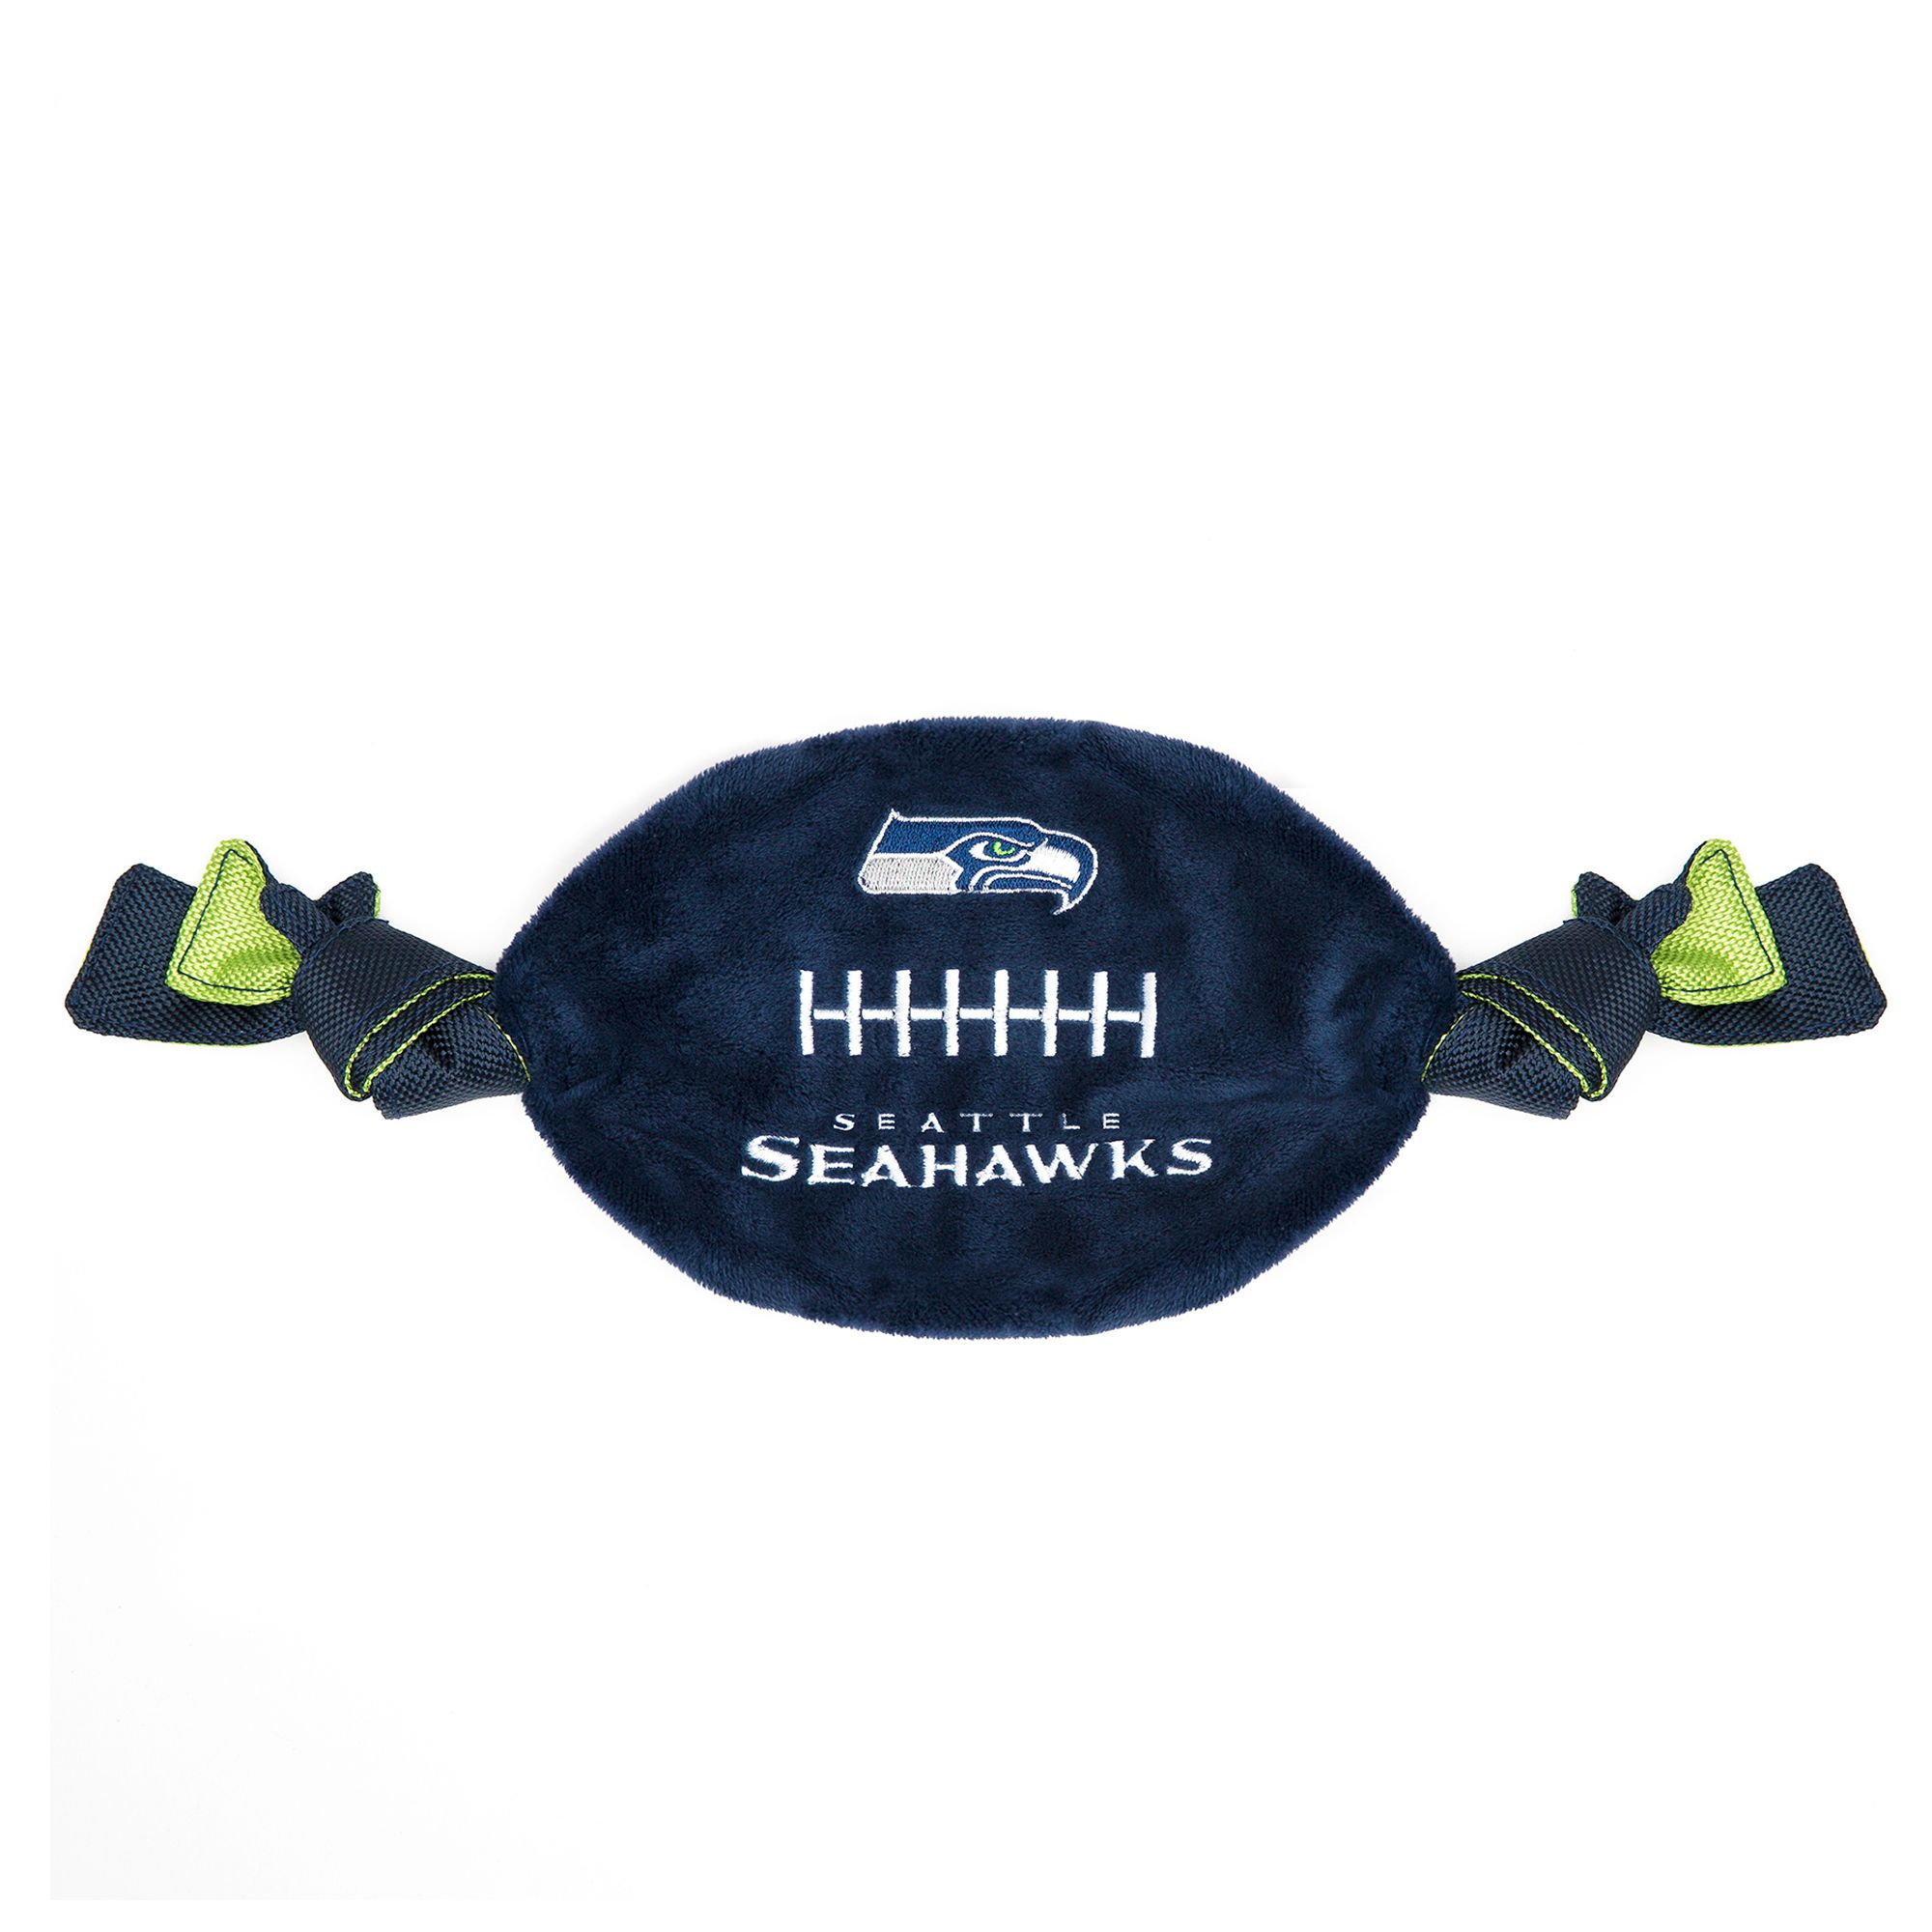 Seattle Seahawks NFL Flattie Crinkle Football Toy 5259769